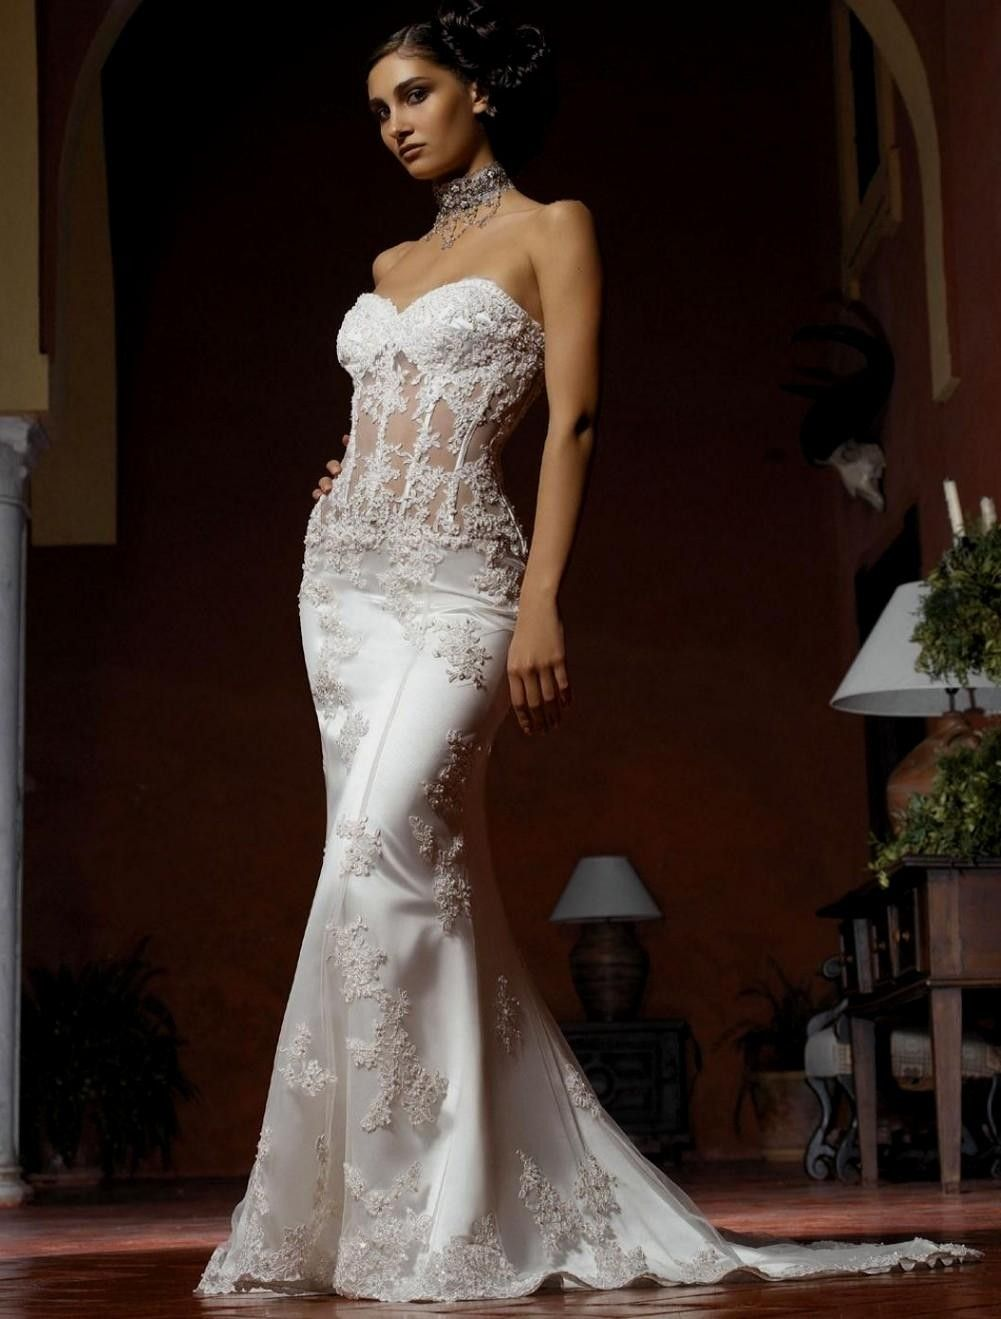 Another Sheer Bodice Wedding Dress Sleek And Form Ing With Lace Detail